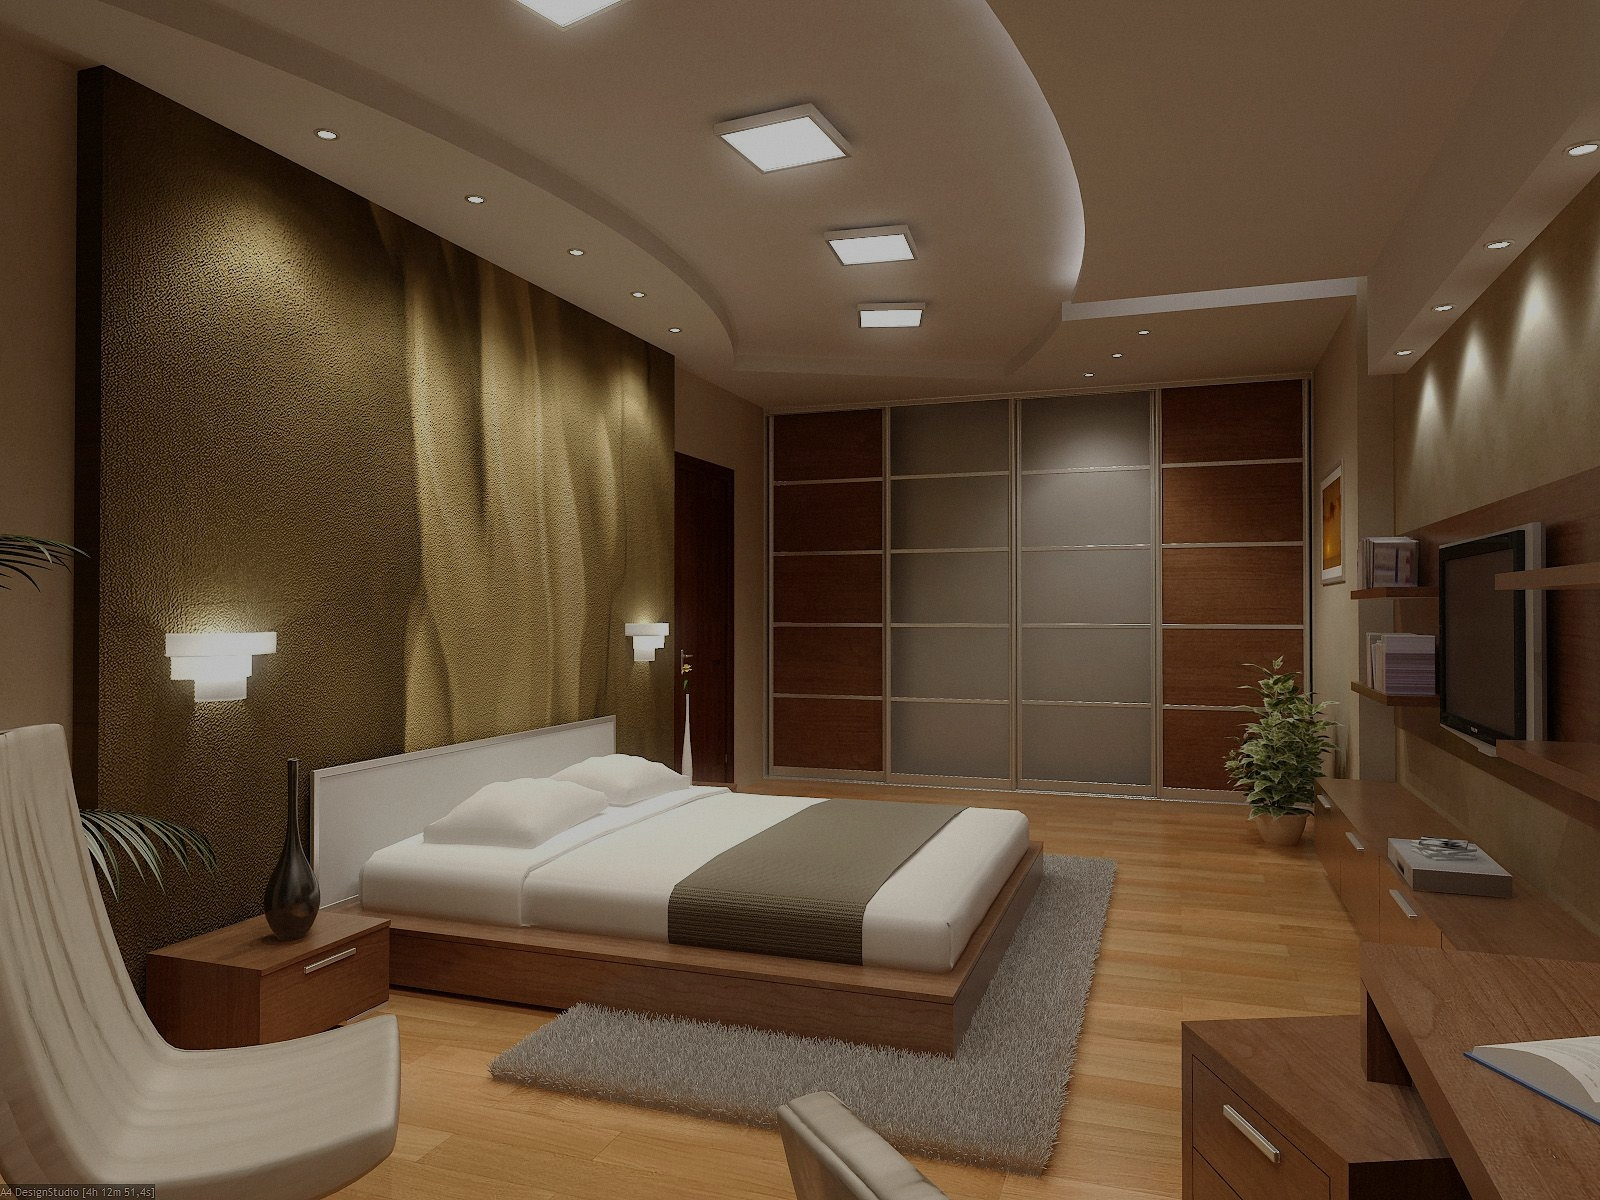 Precise lighting store exotic lights chandeliers crystal bulbs commercial lights and so on - Learn interior design at home ...